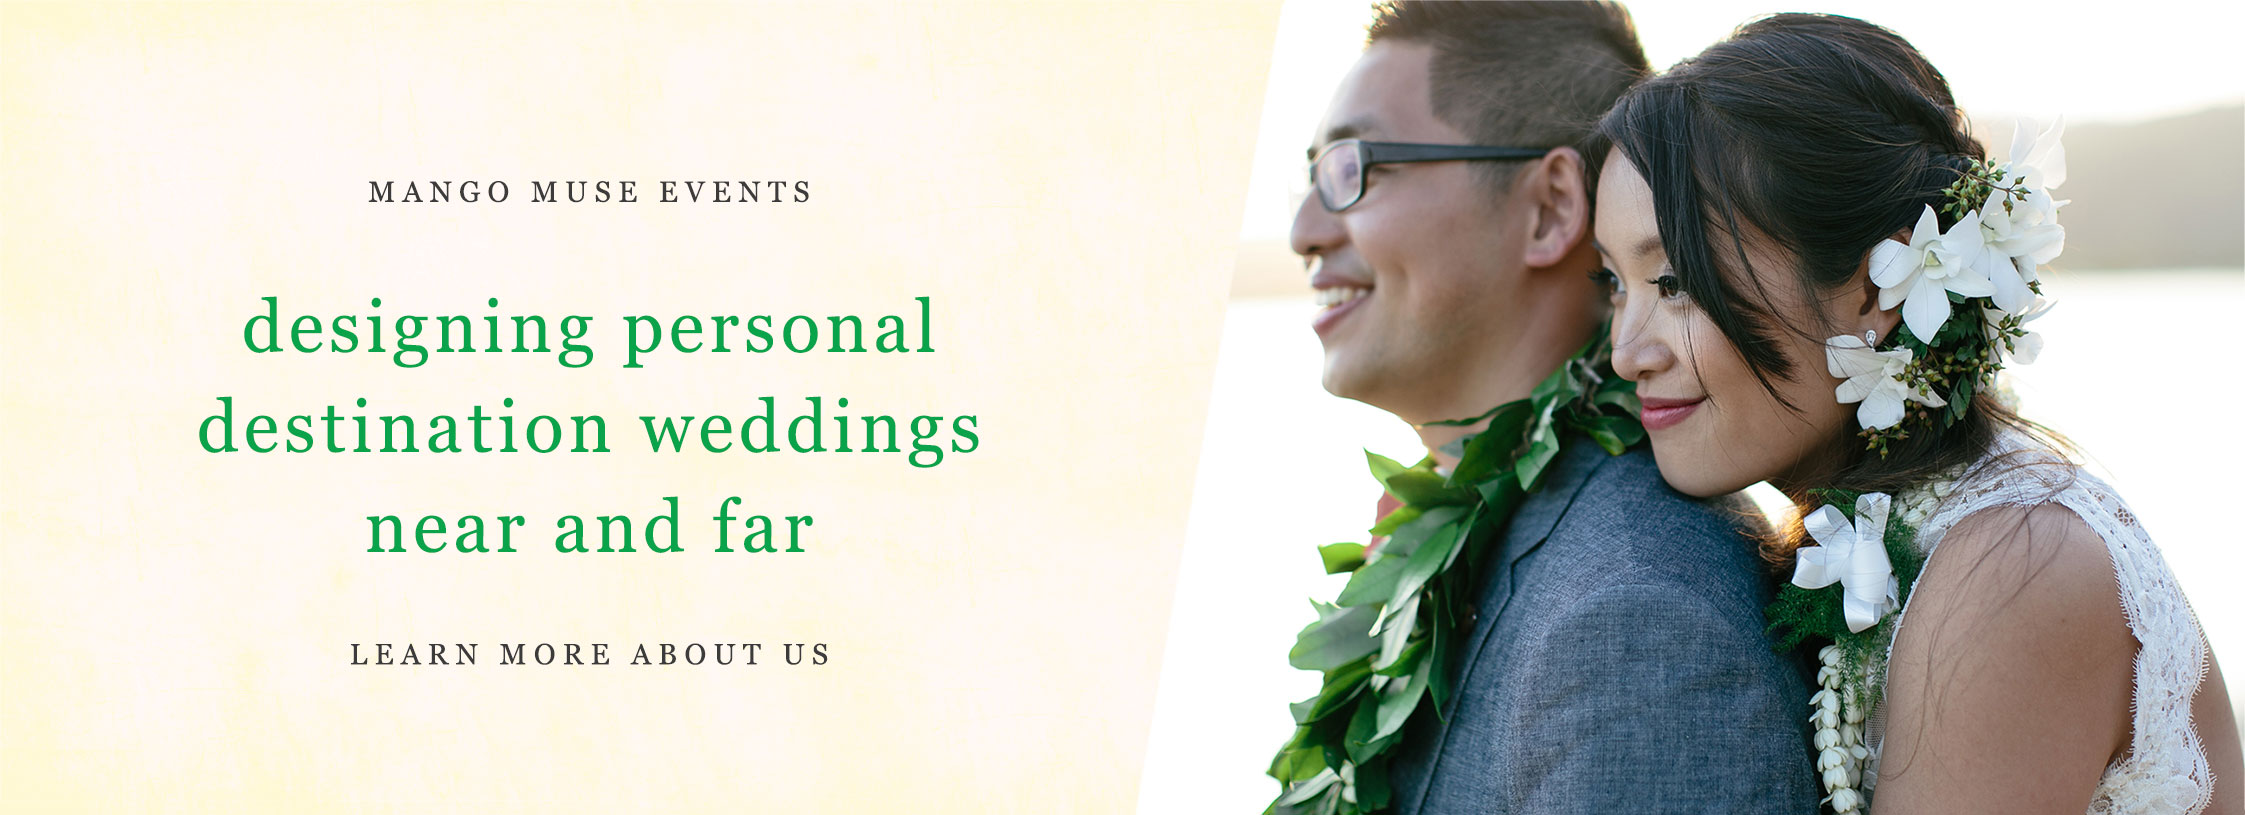 Happy couple at a Hawaii destination wedding by Destination wedding planner Mango Muse Events